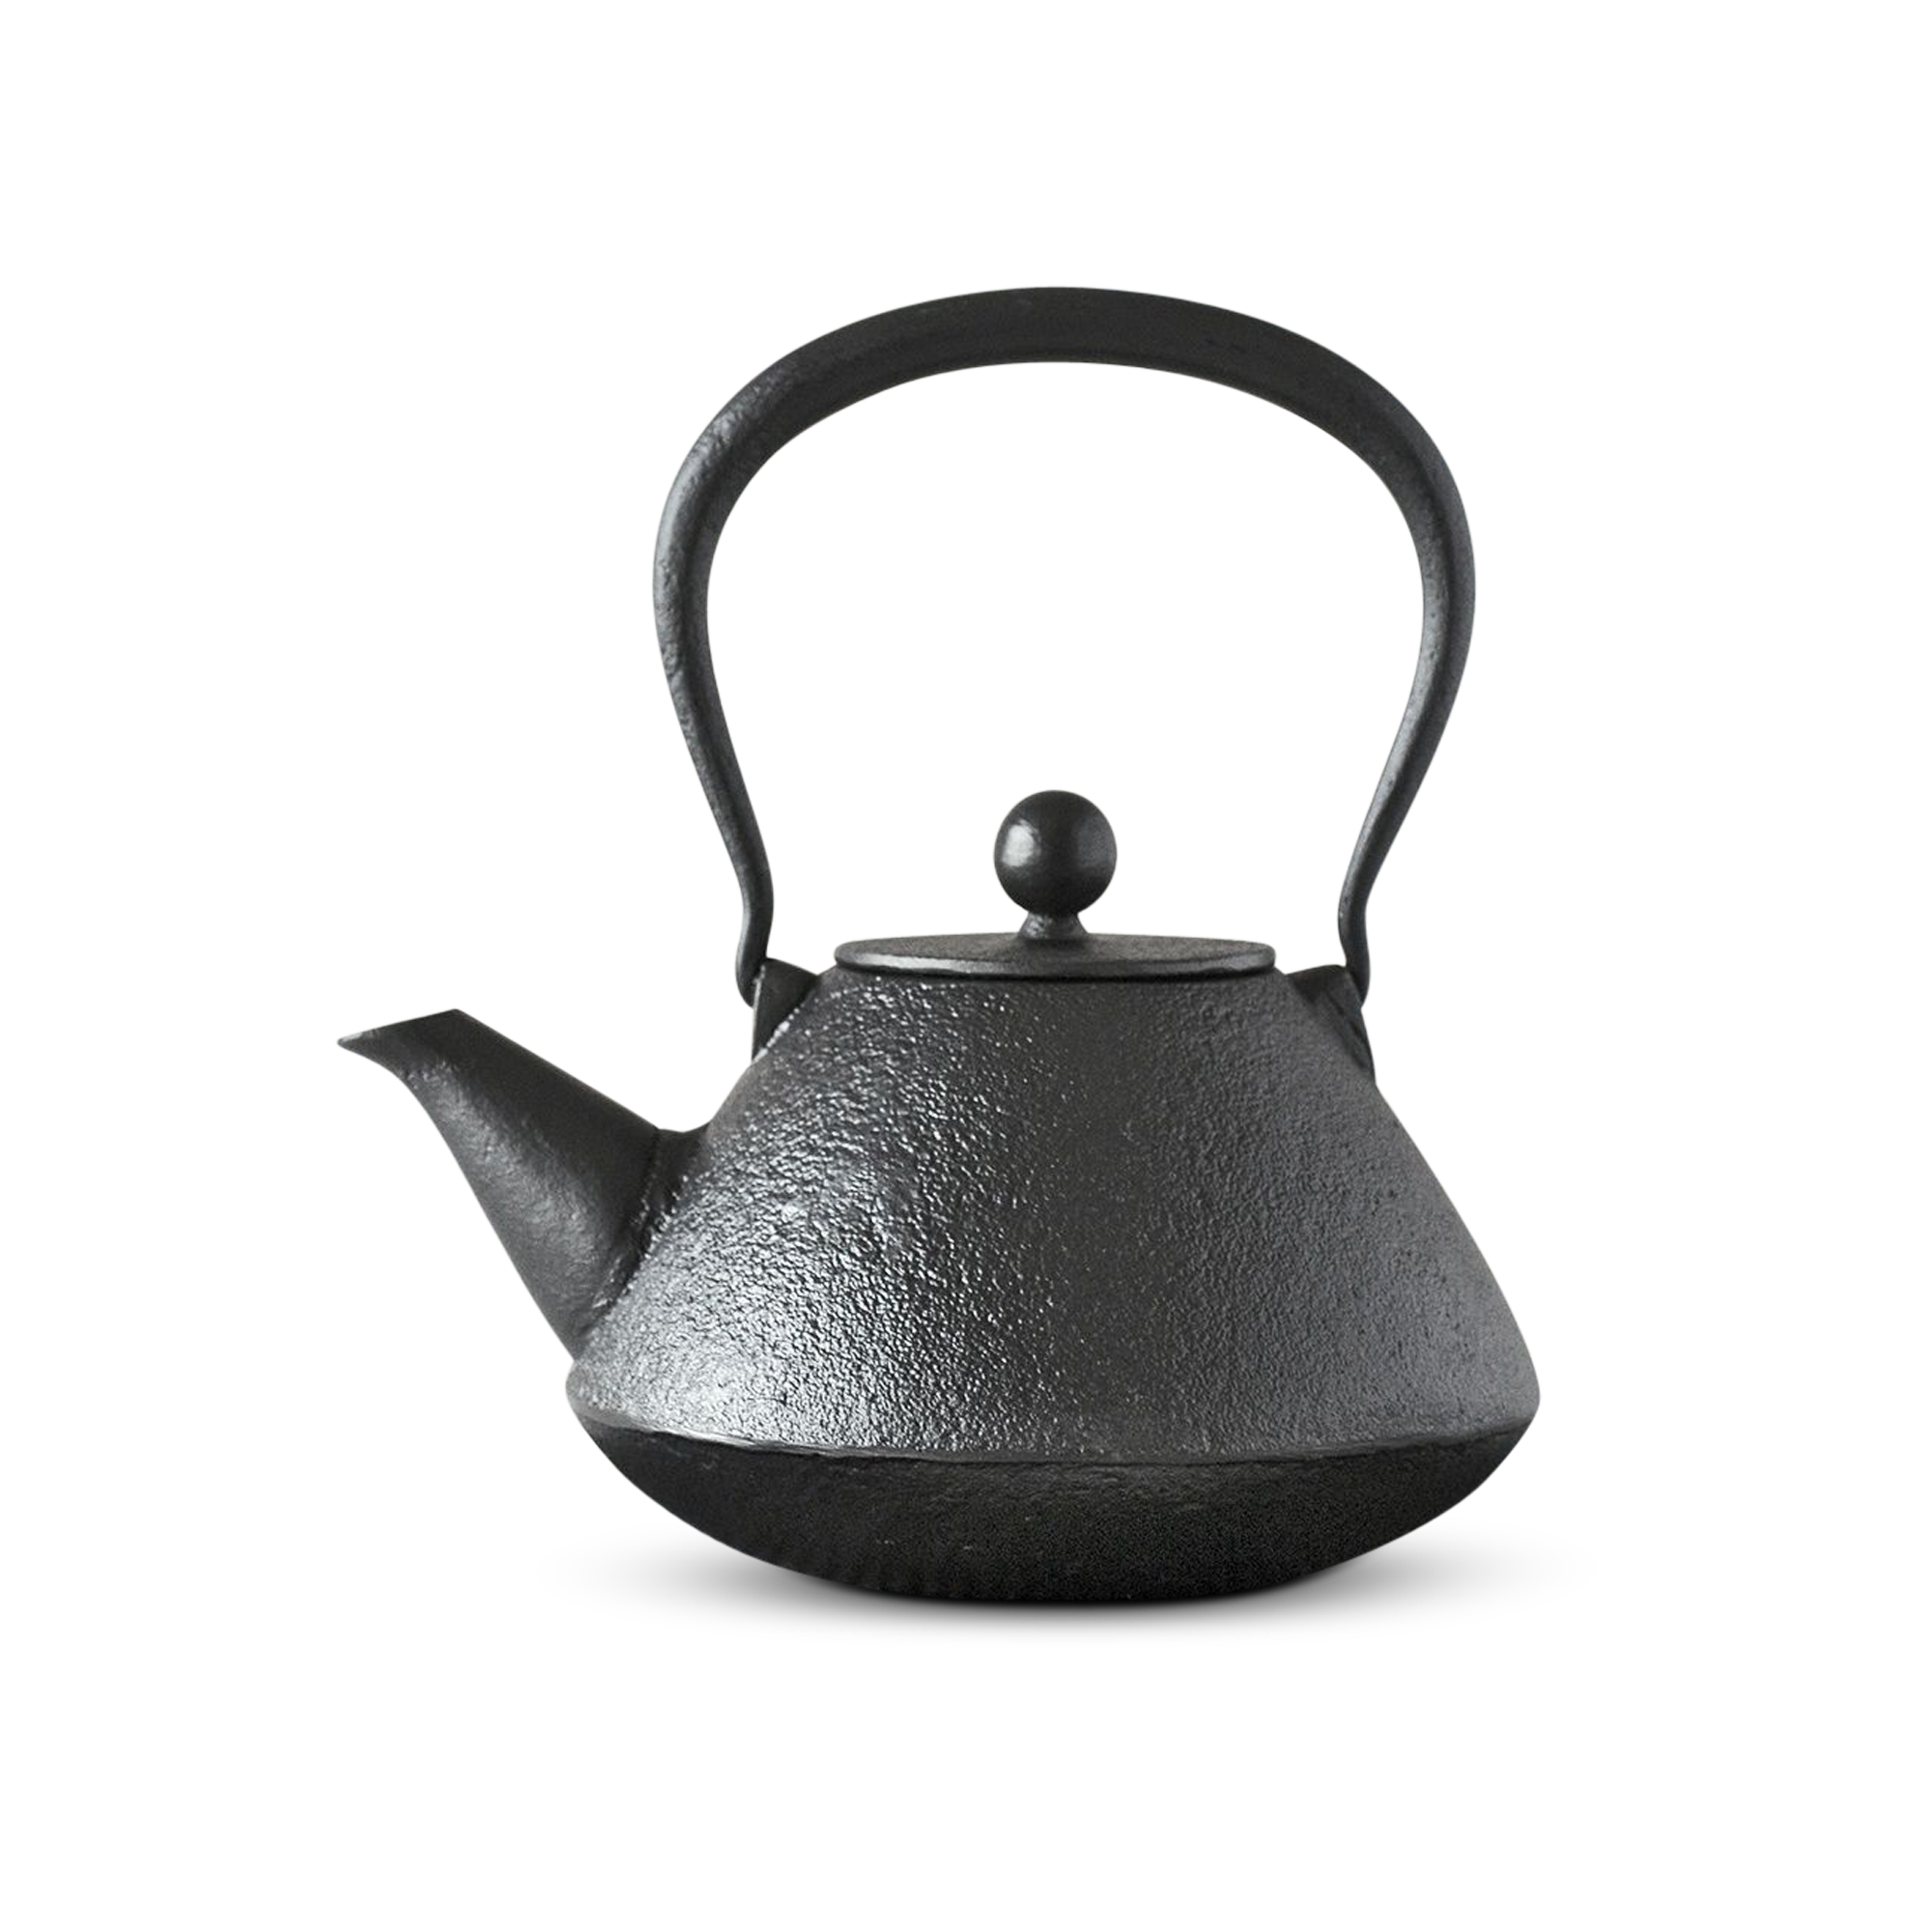 Iron Kettle | Kettle, Iron, Cast iron kettle